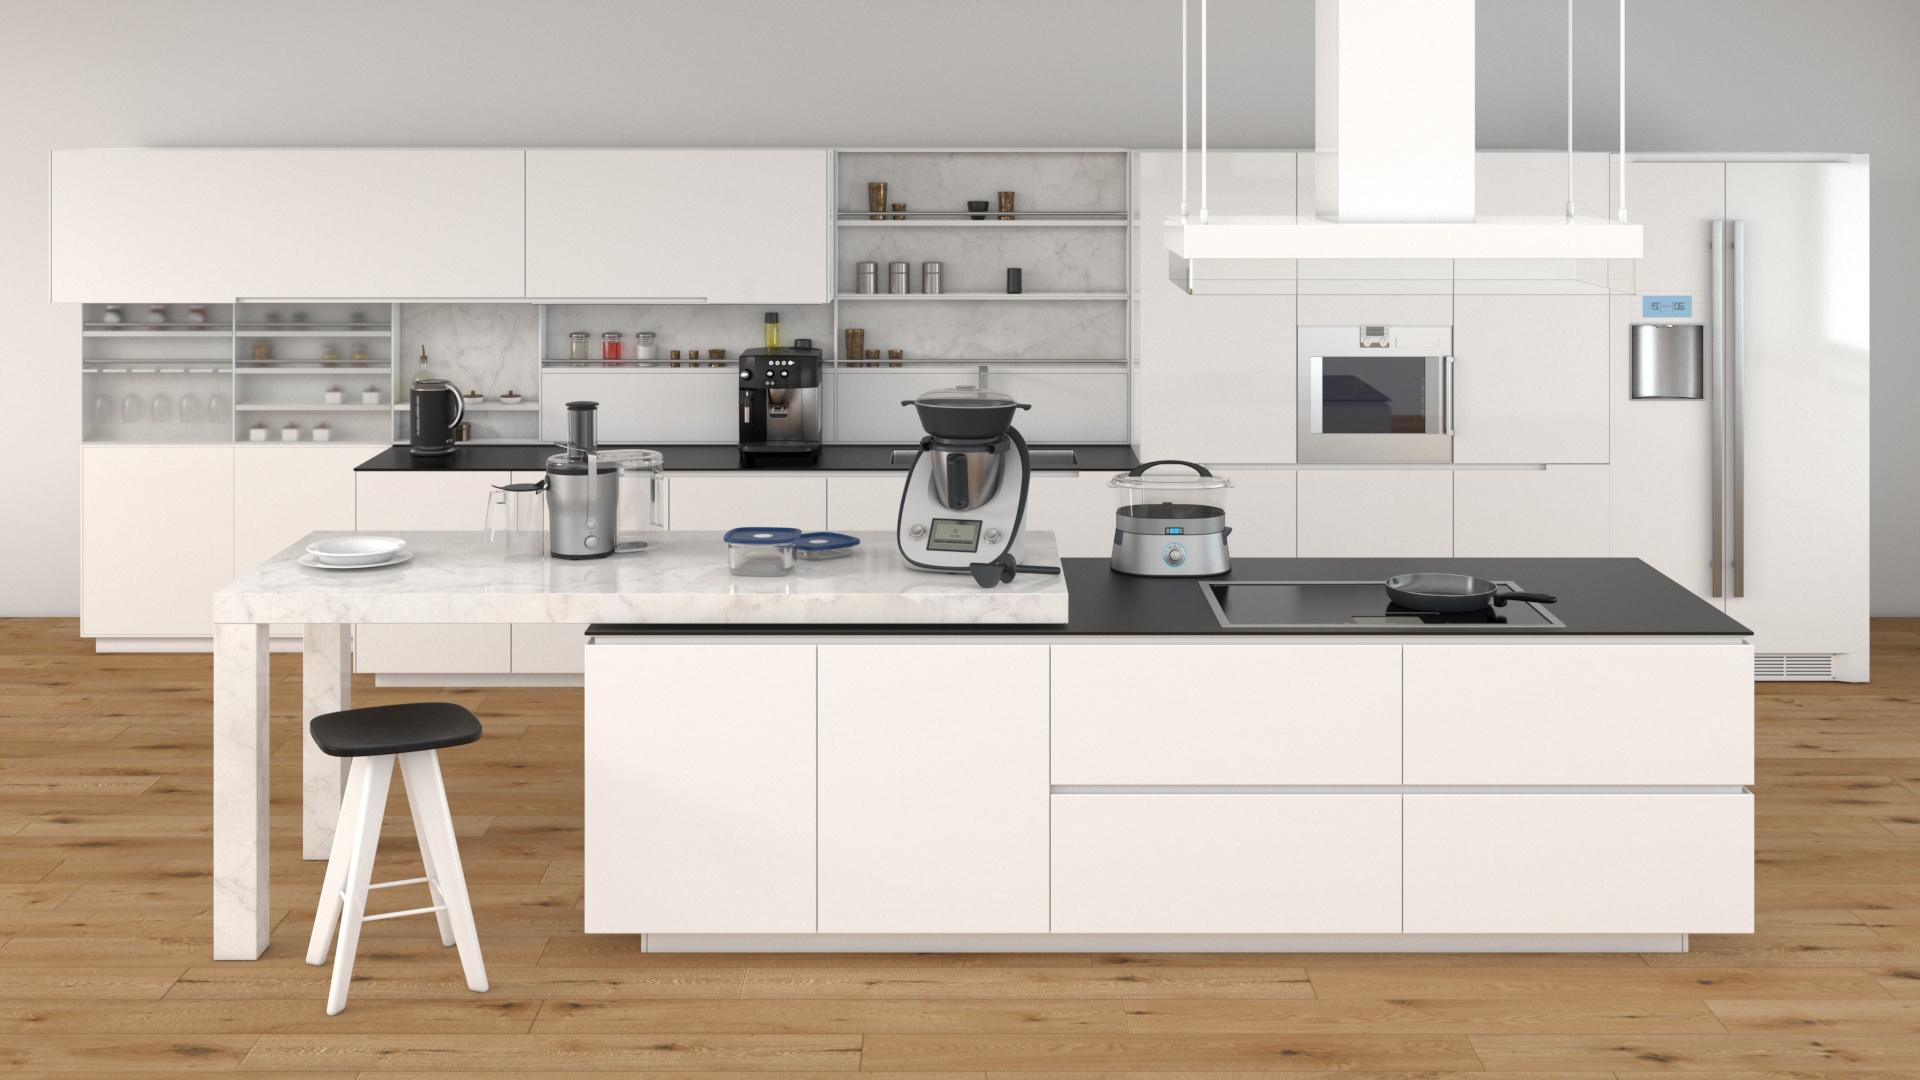 BASF Better Living Kitchen